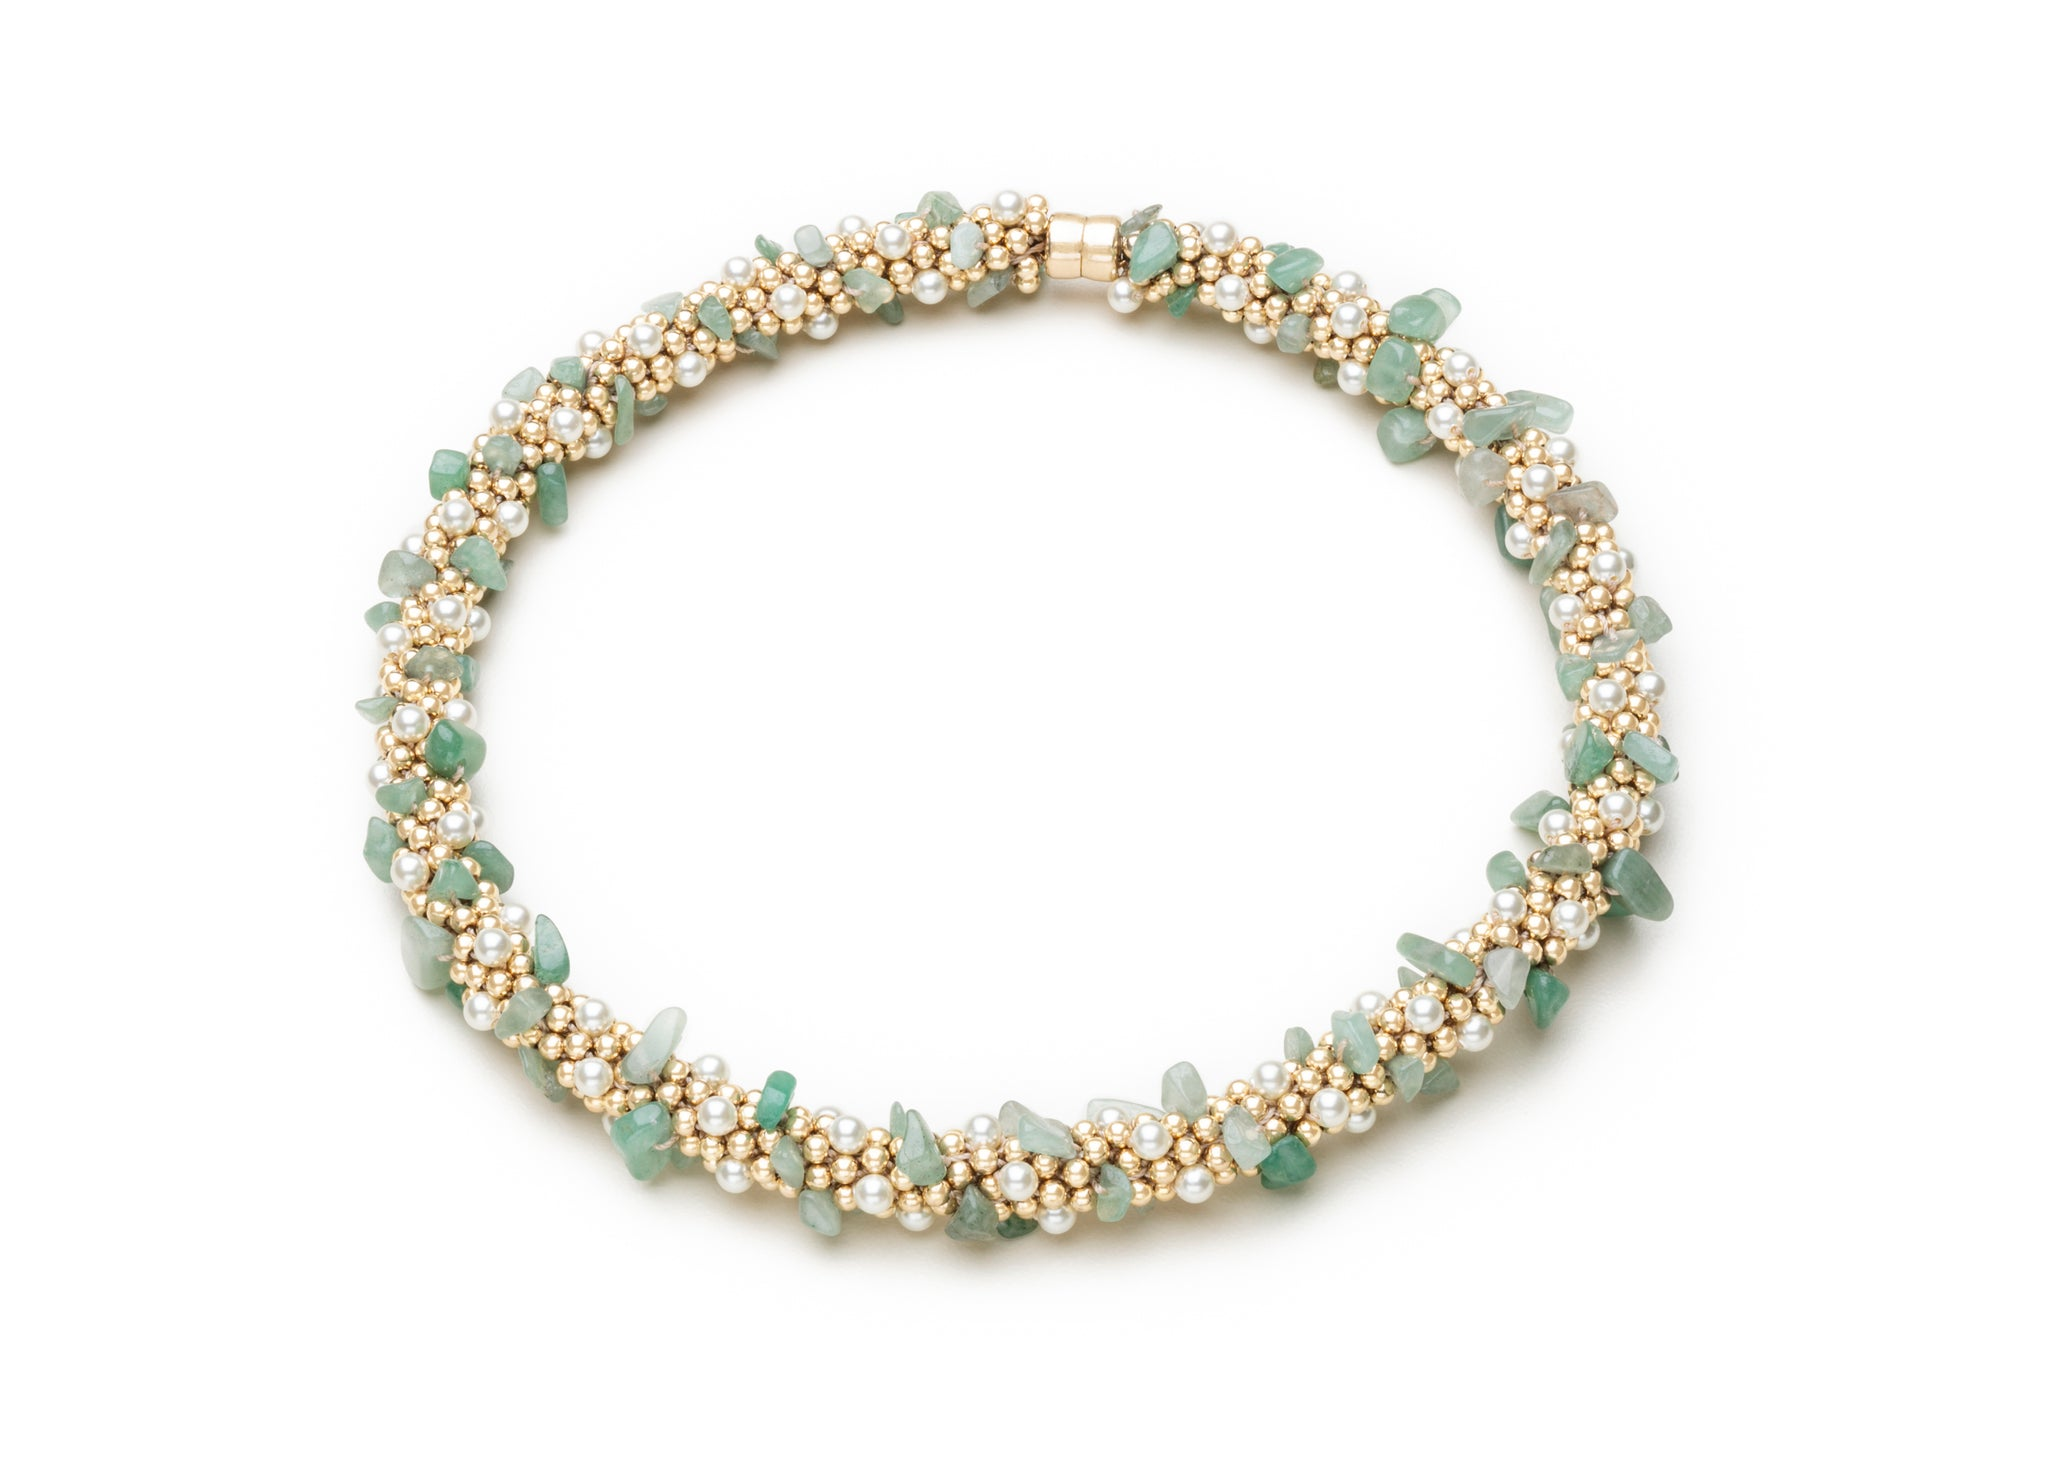 A Pearl, Aventurine and Gold Necklace